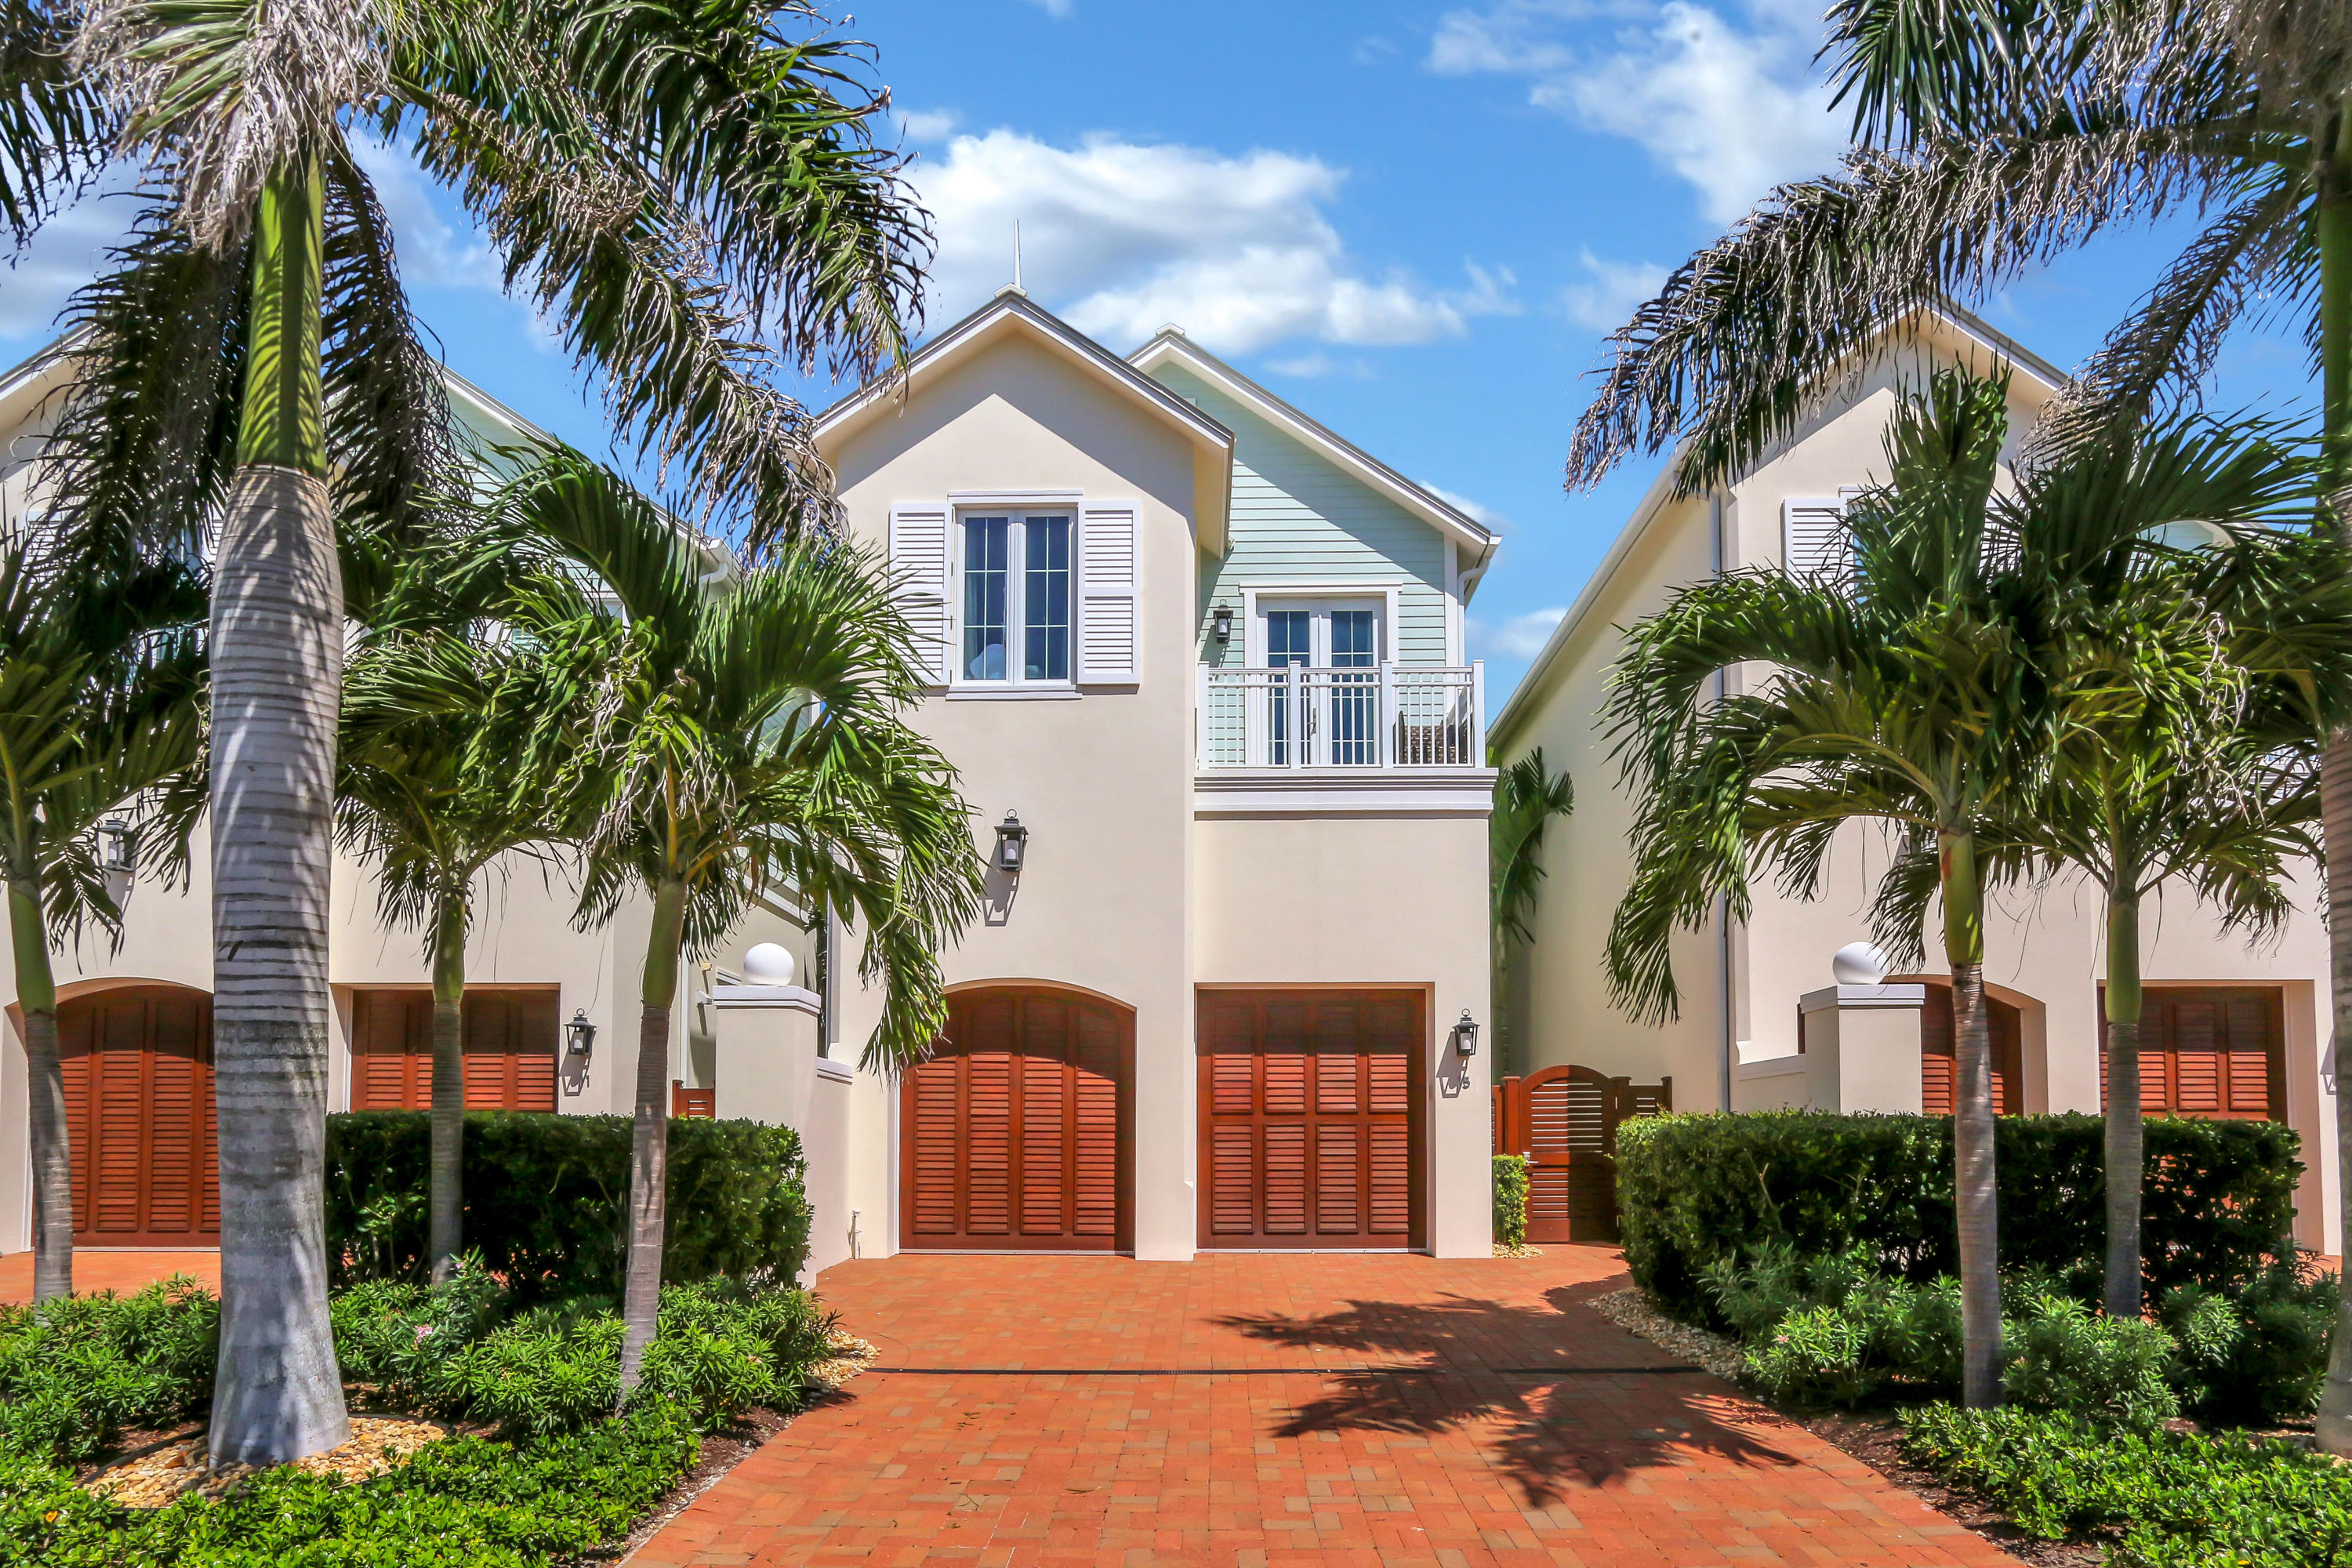 15 Adams Road, Ocean Ridge, Florida 33435, 3 Bedrooms Bedrooms, ,3.1 BathroomsBathrooms,Townhouse,For Sale,Adams,RX-10579895